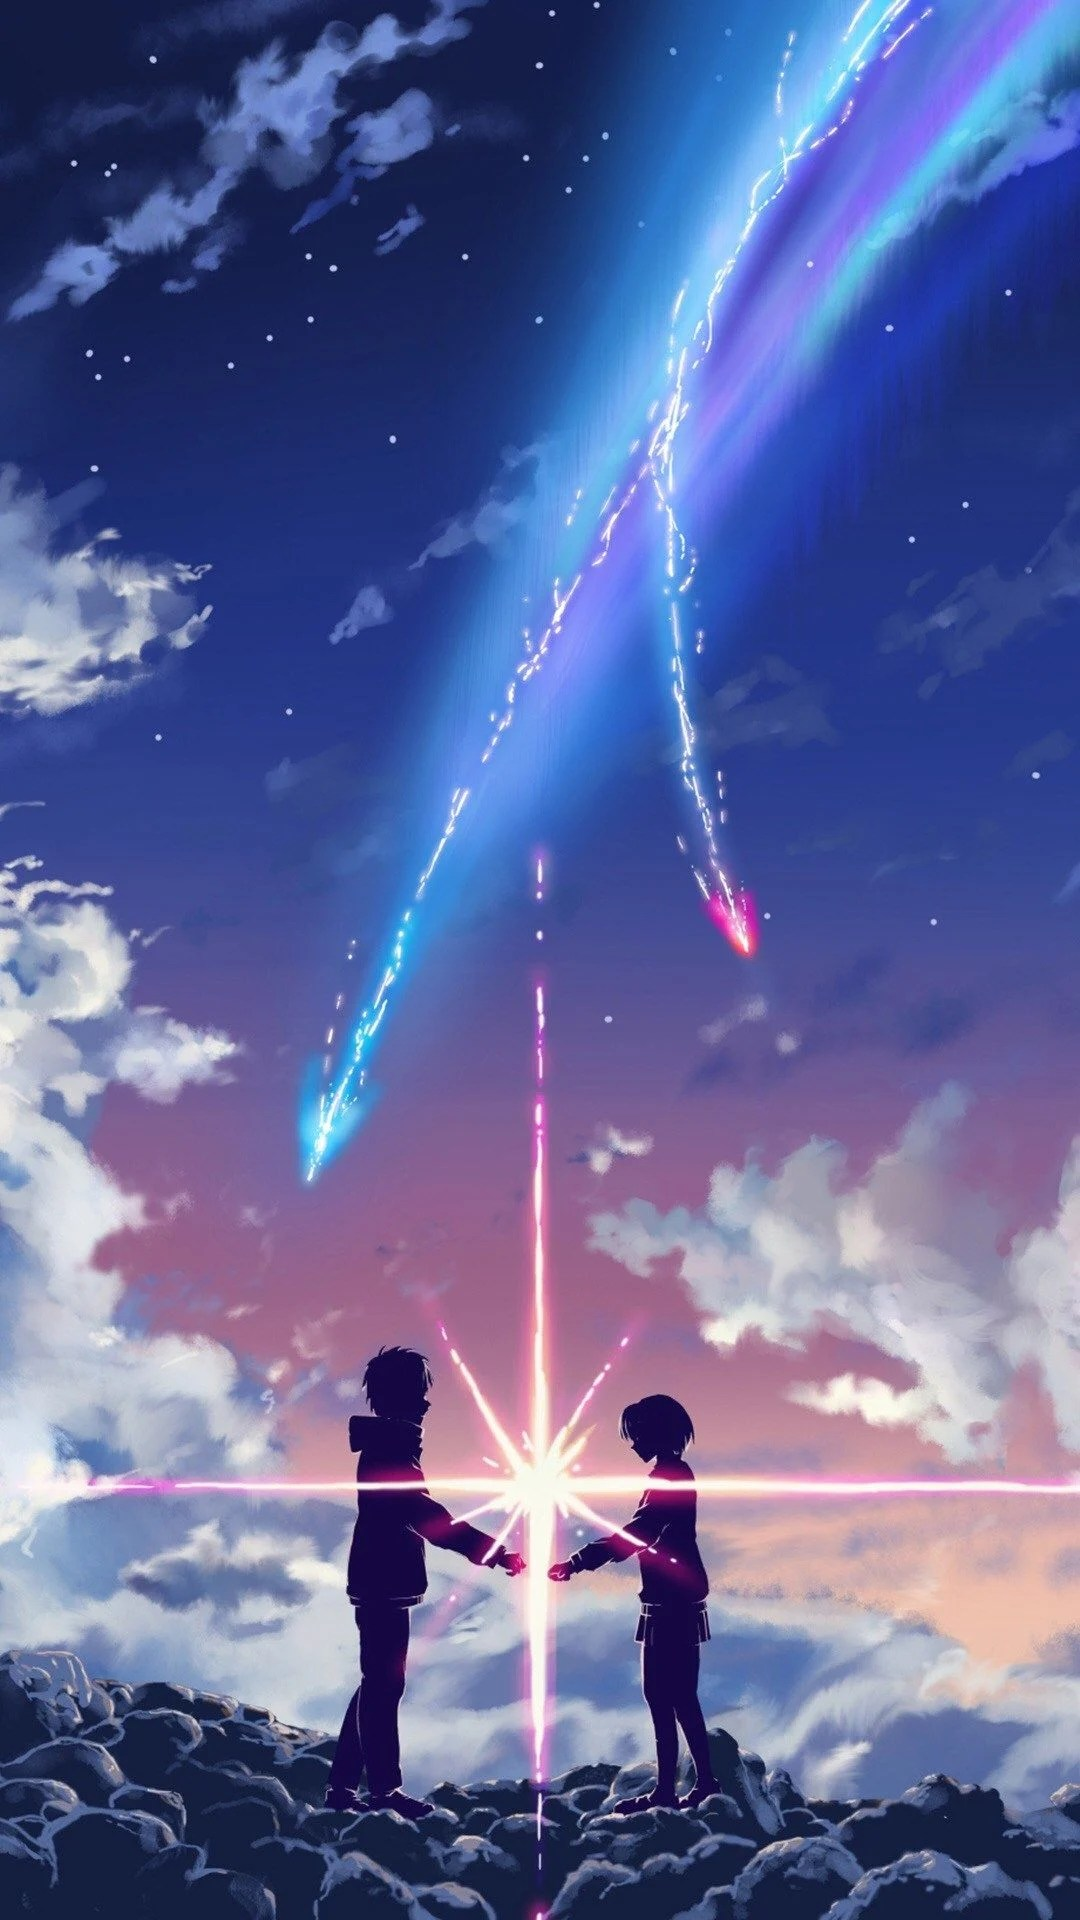 Your Name Wallpaper Iphone Live : wallpaper, iphone, Anime, Wallpapers, Backgrounds, WallpaperAccess